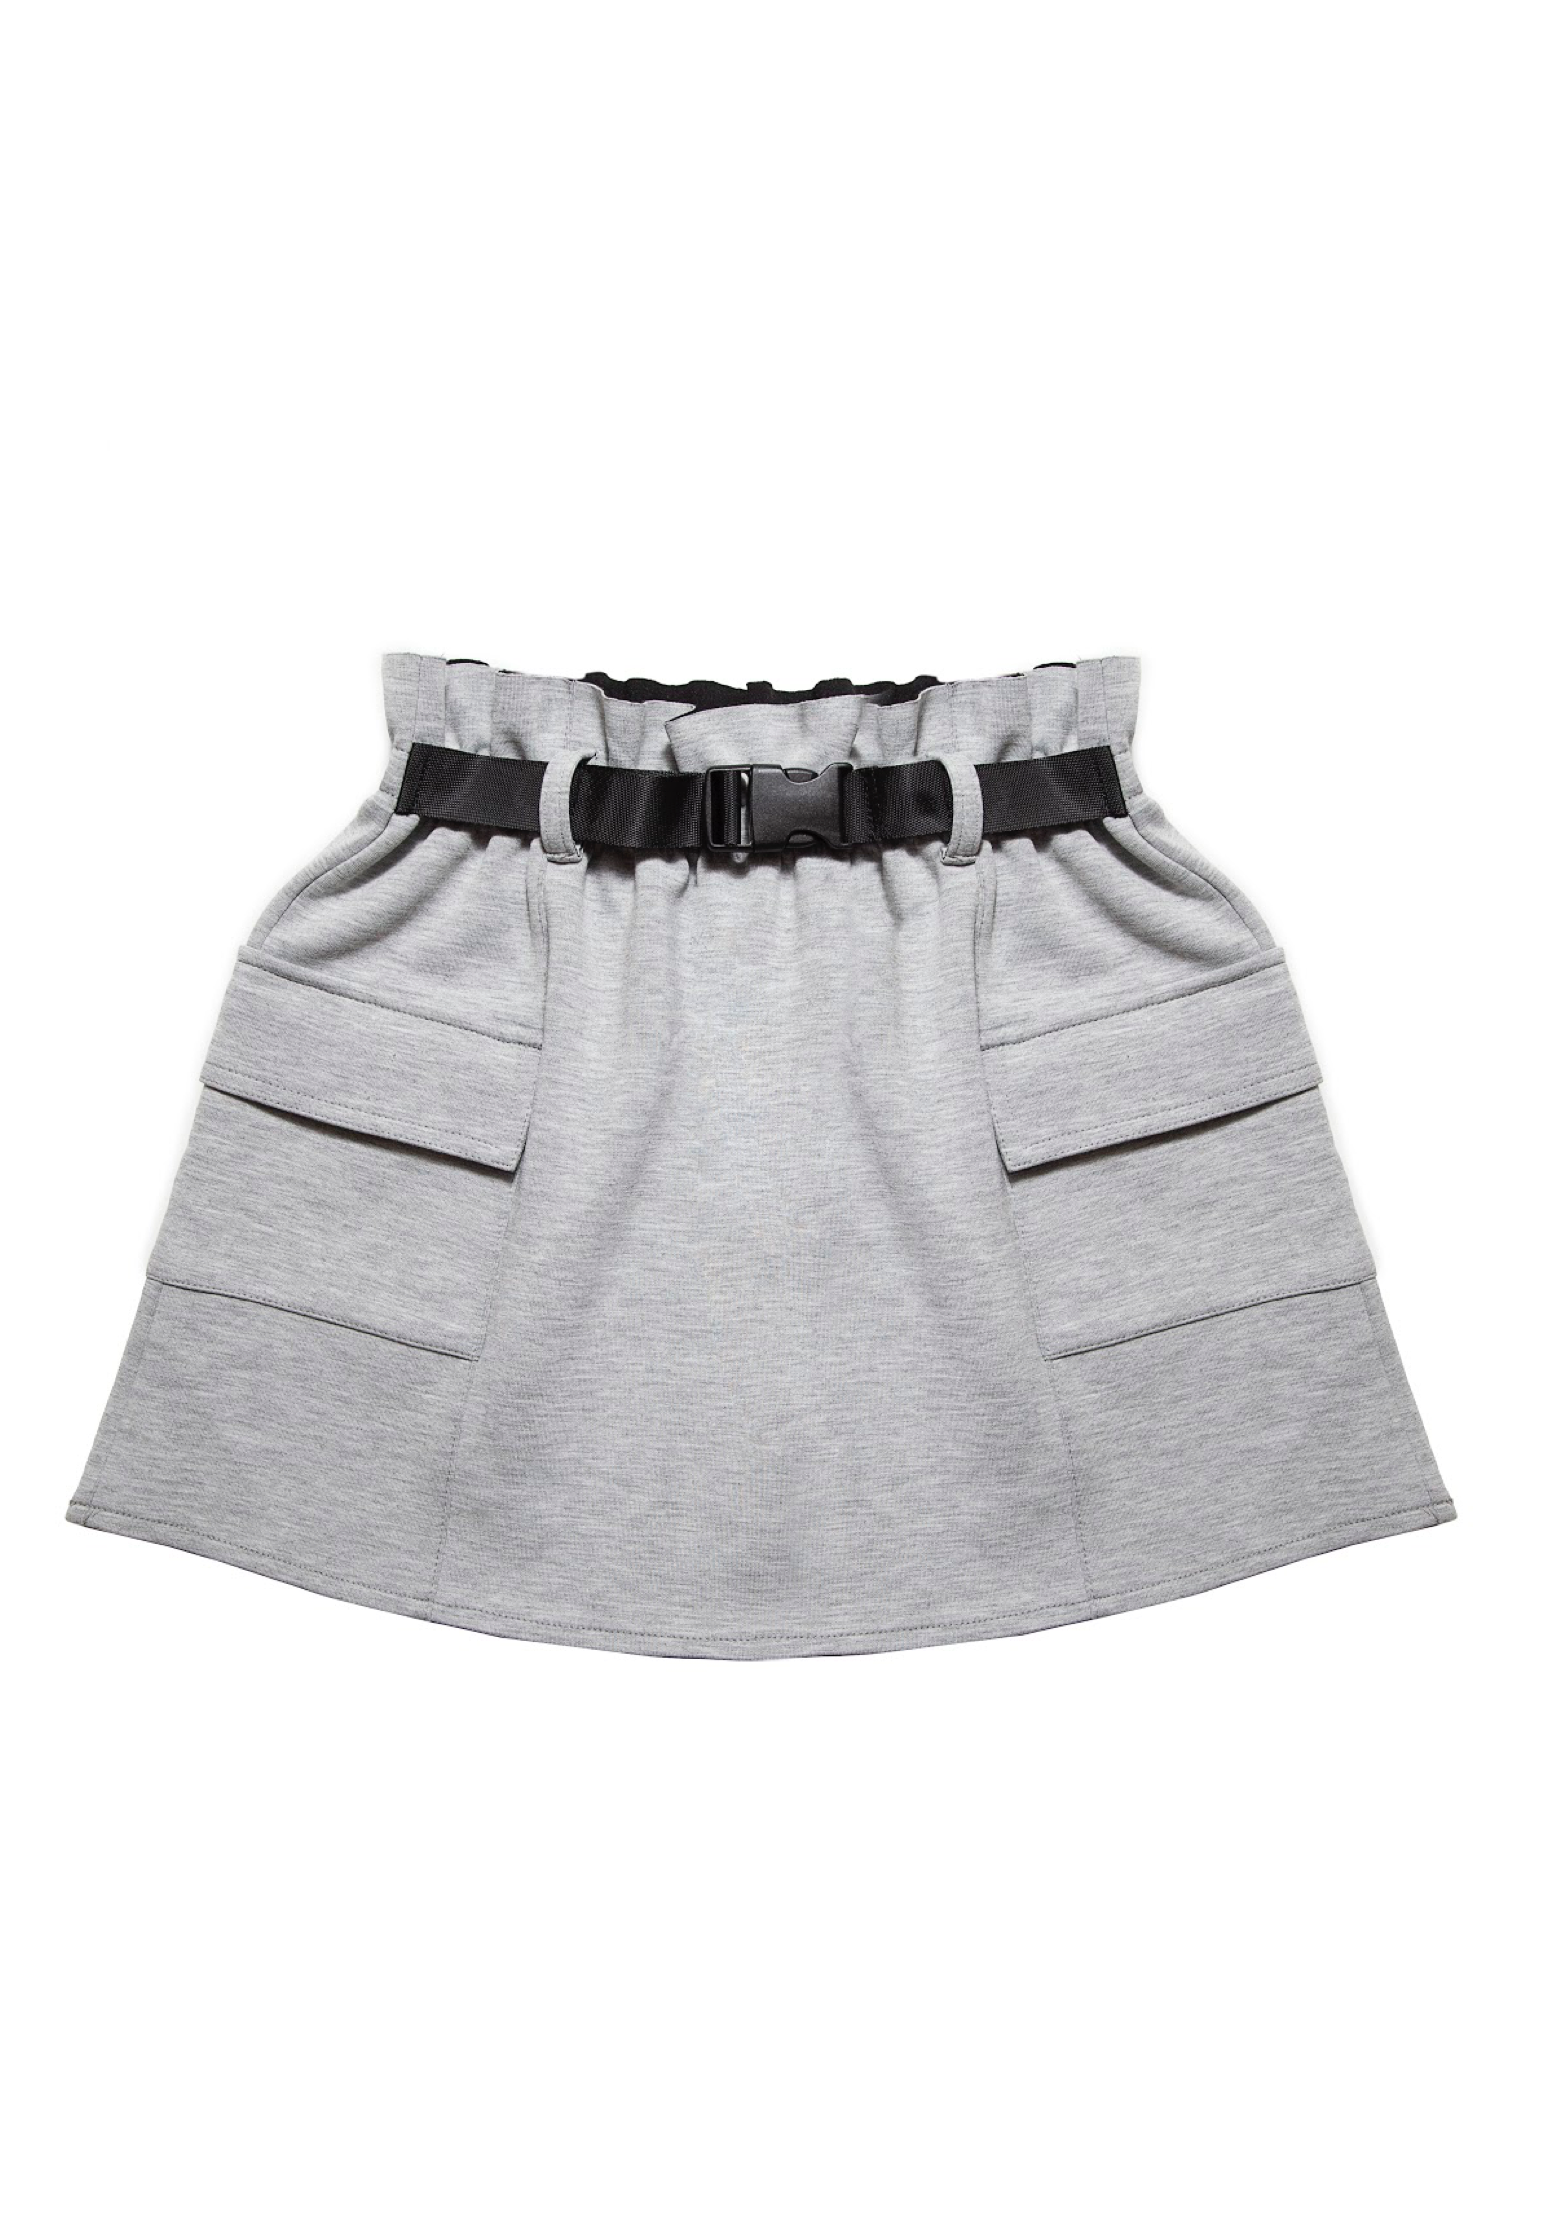 Studded Tee White Gray Skirt Set